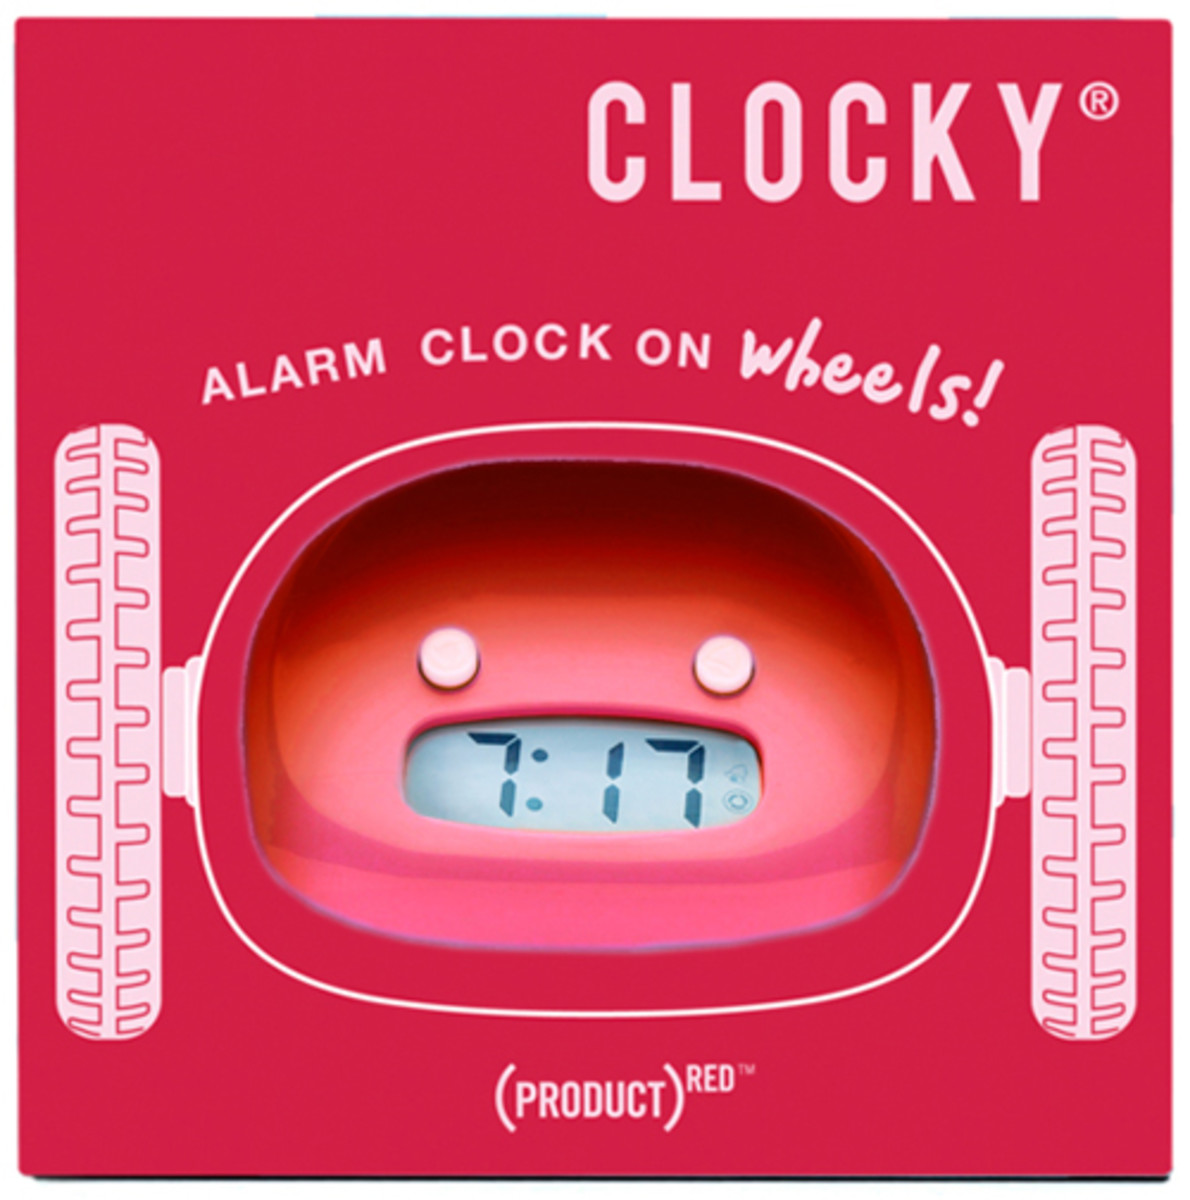 product-red-nanda-home-clocky-alarm-clock-07